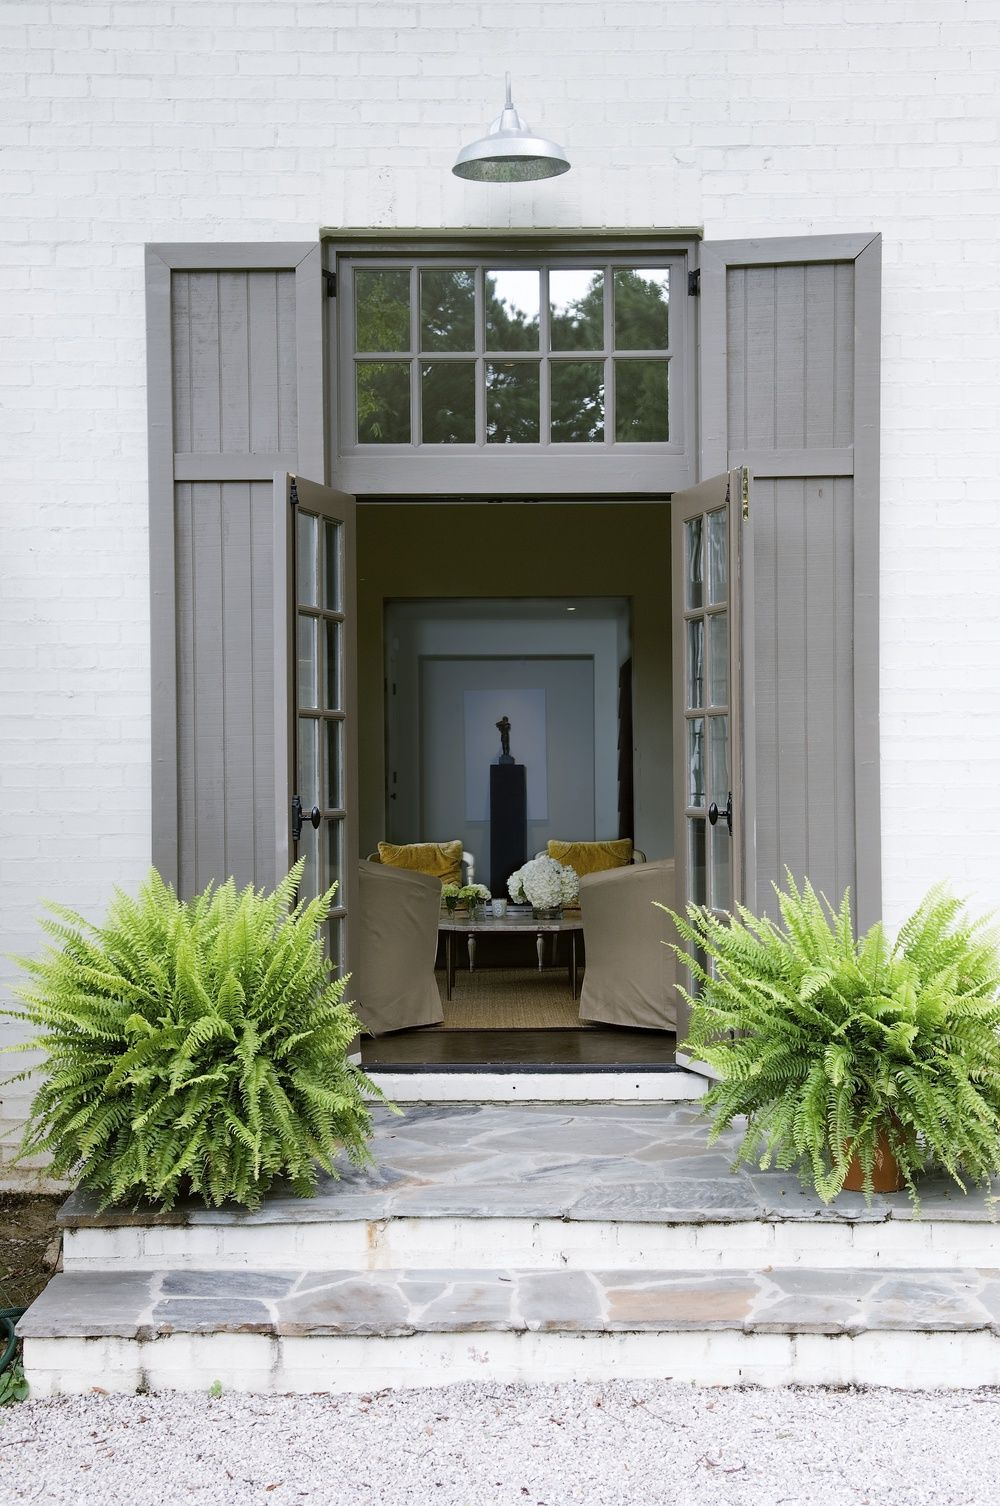 Pin By Kristy Wicks On Houses Curb Appeal Pinterest Doors